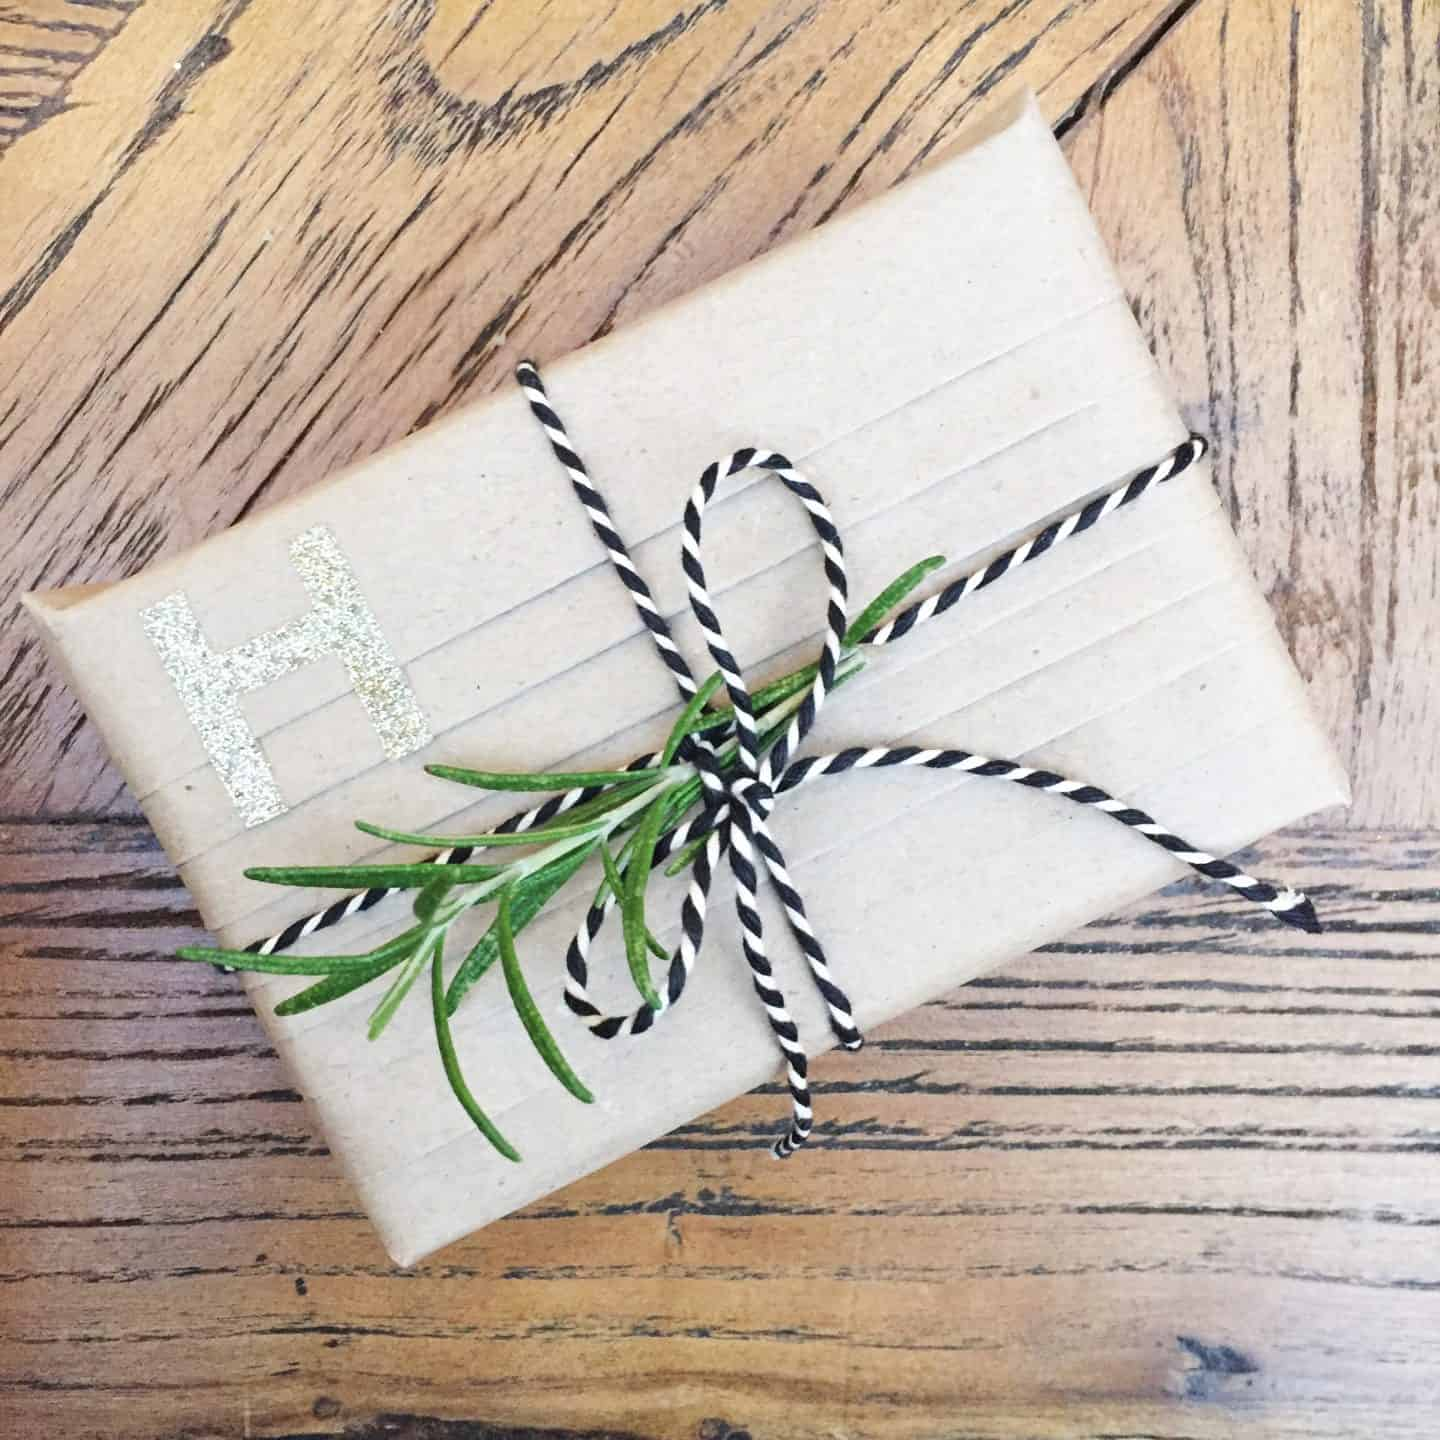 Home made eco-friendly wrapping paper